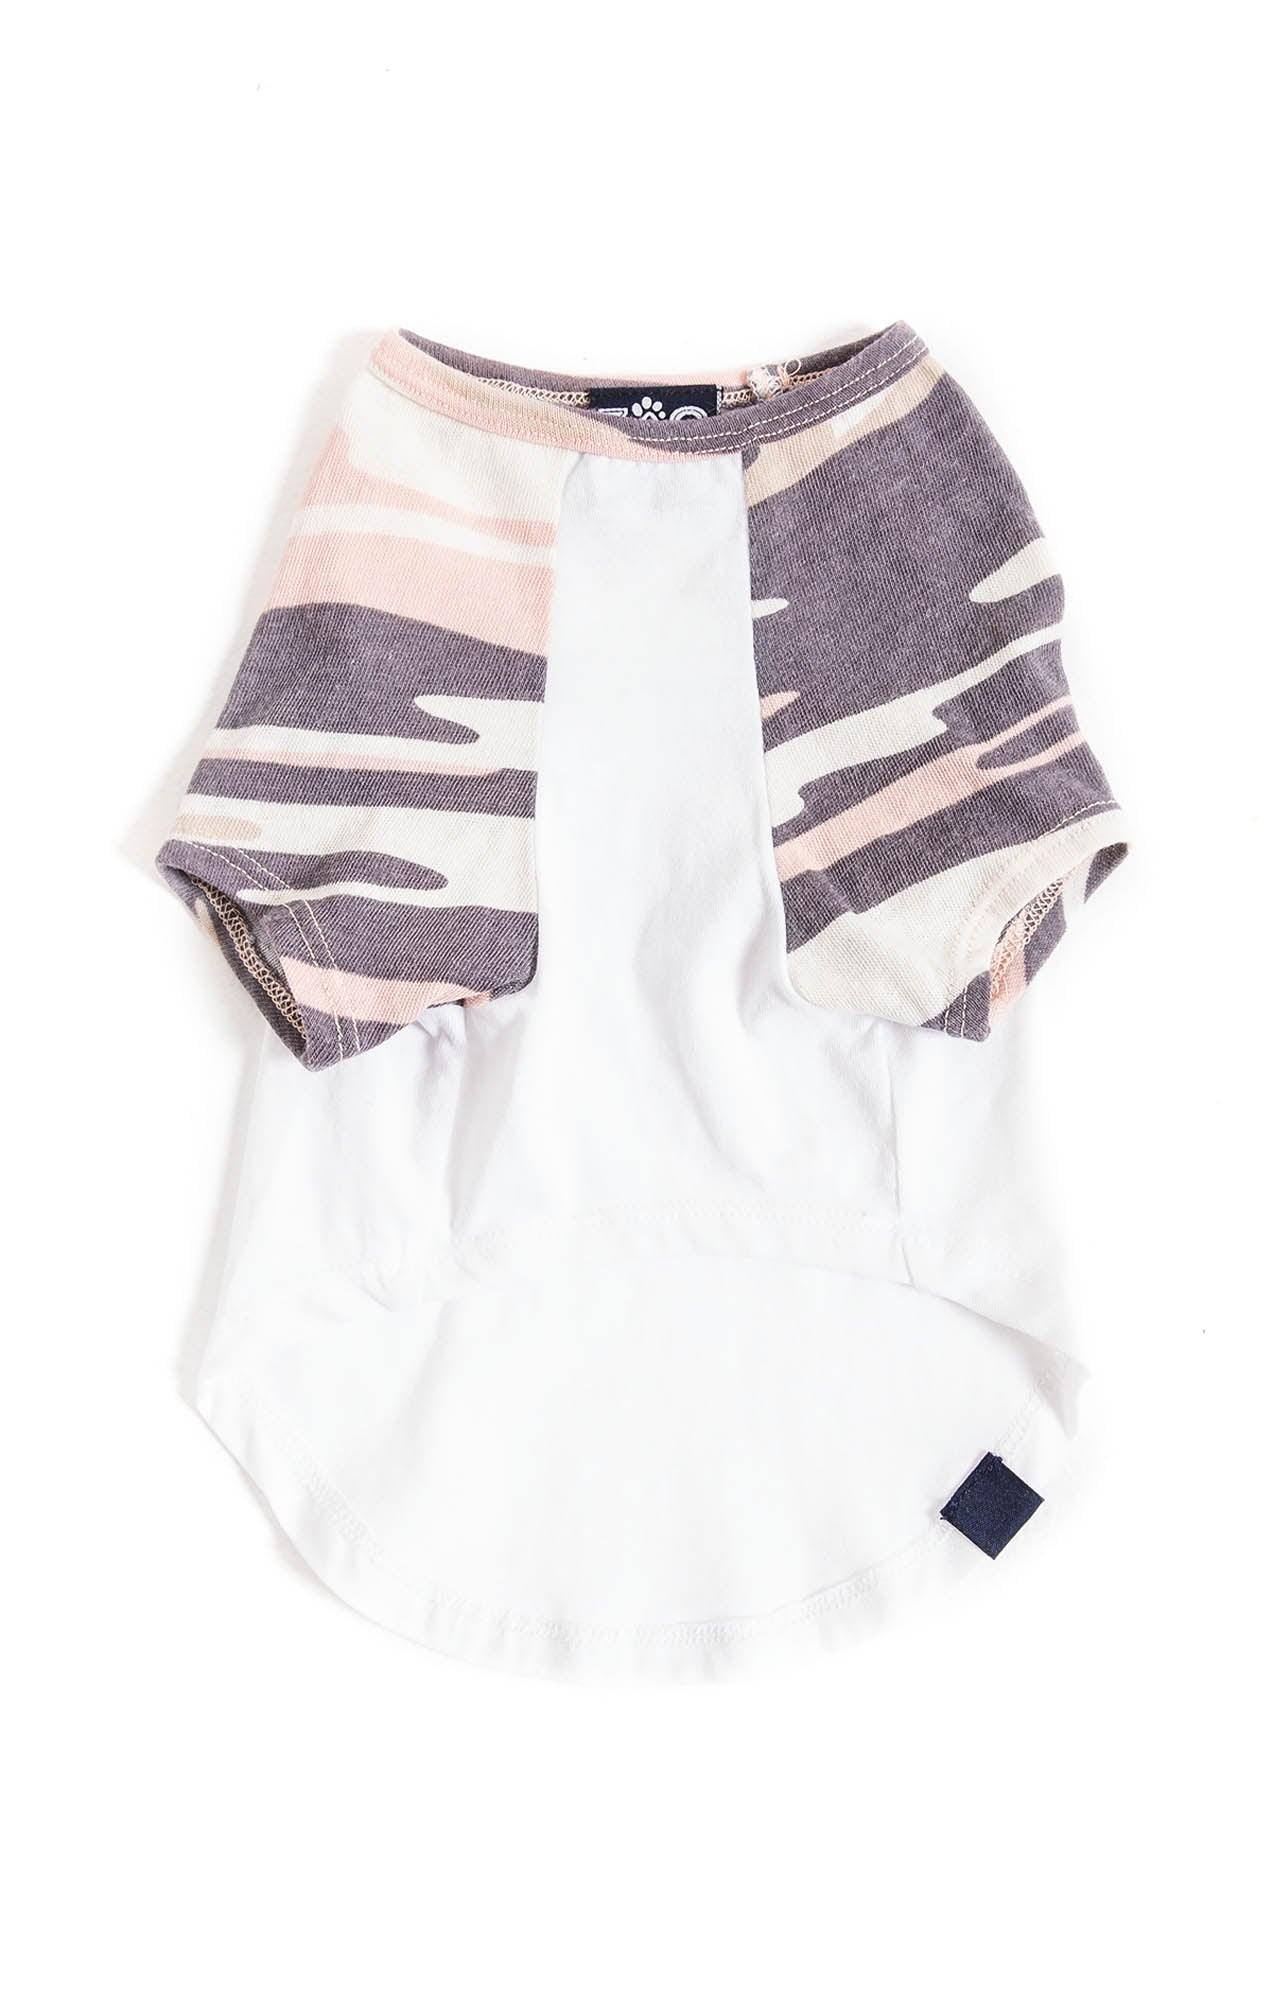 Tops The Camo Baseball Tee by ZOO SUPPLY White/Camo Pink